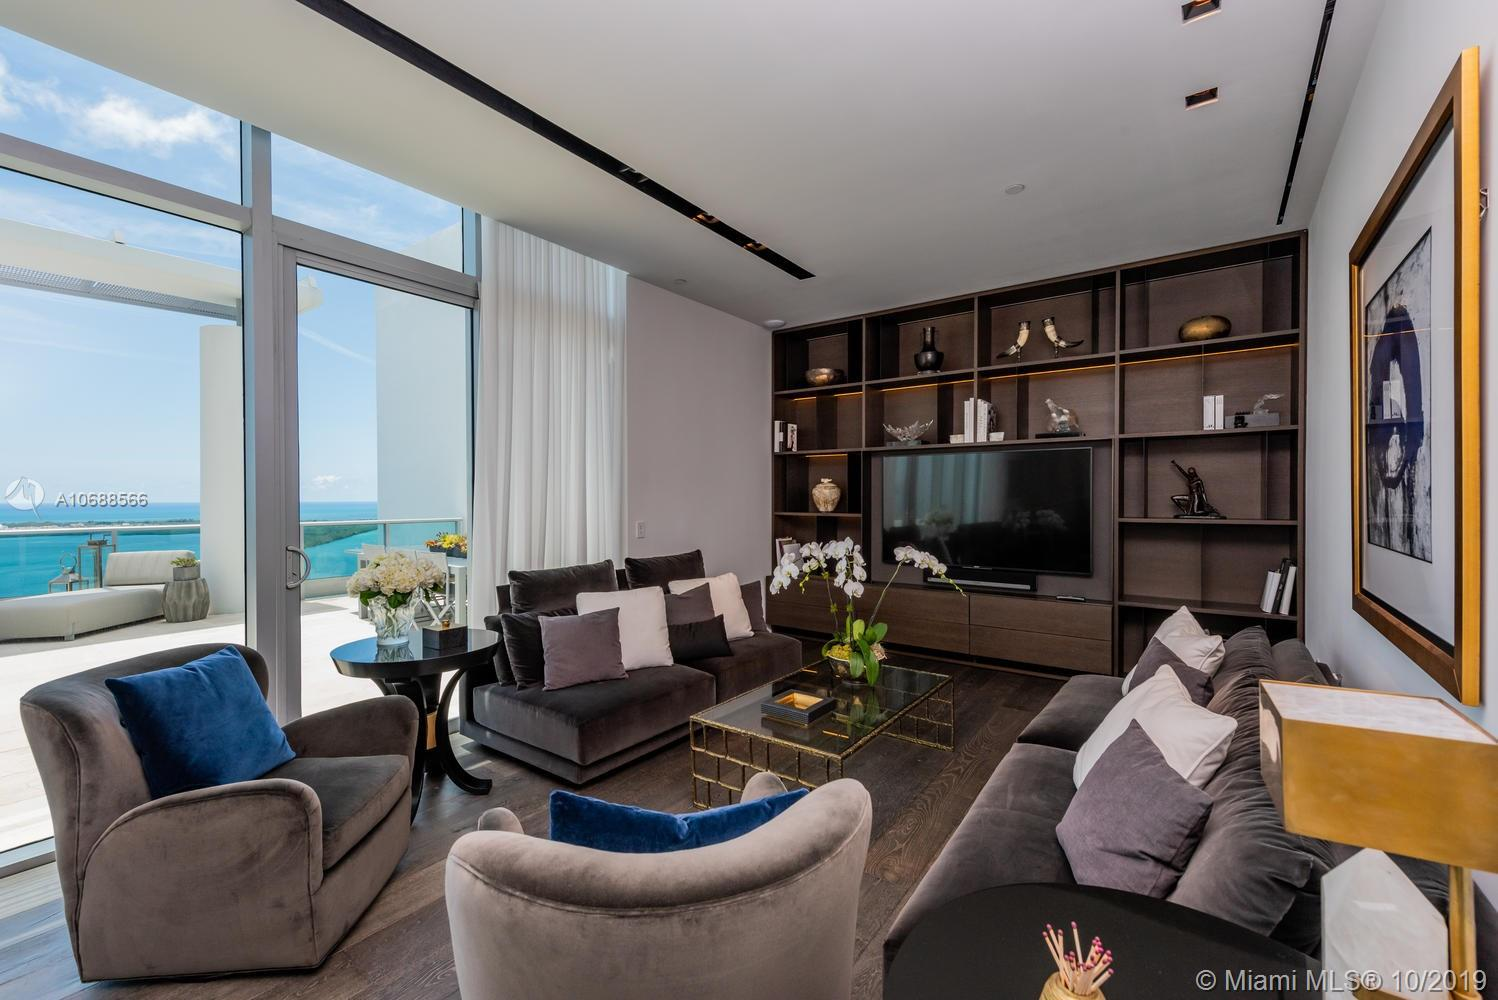 1331 Brickell bay dr-PH4707 miami-fl-33131-a10688566-Pic17